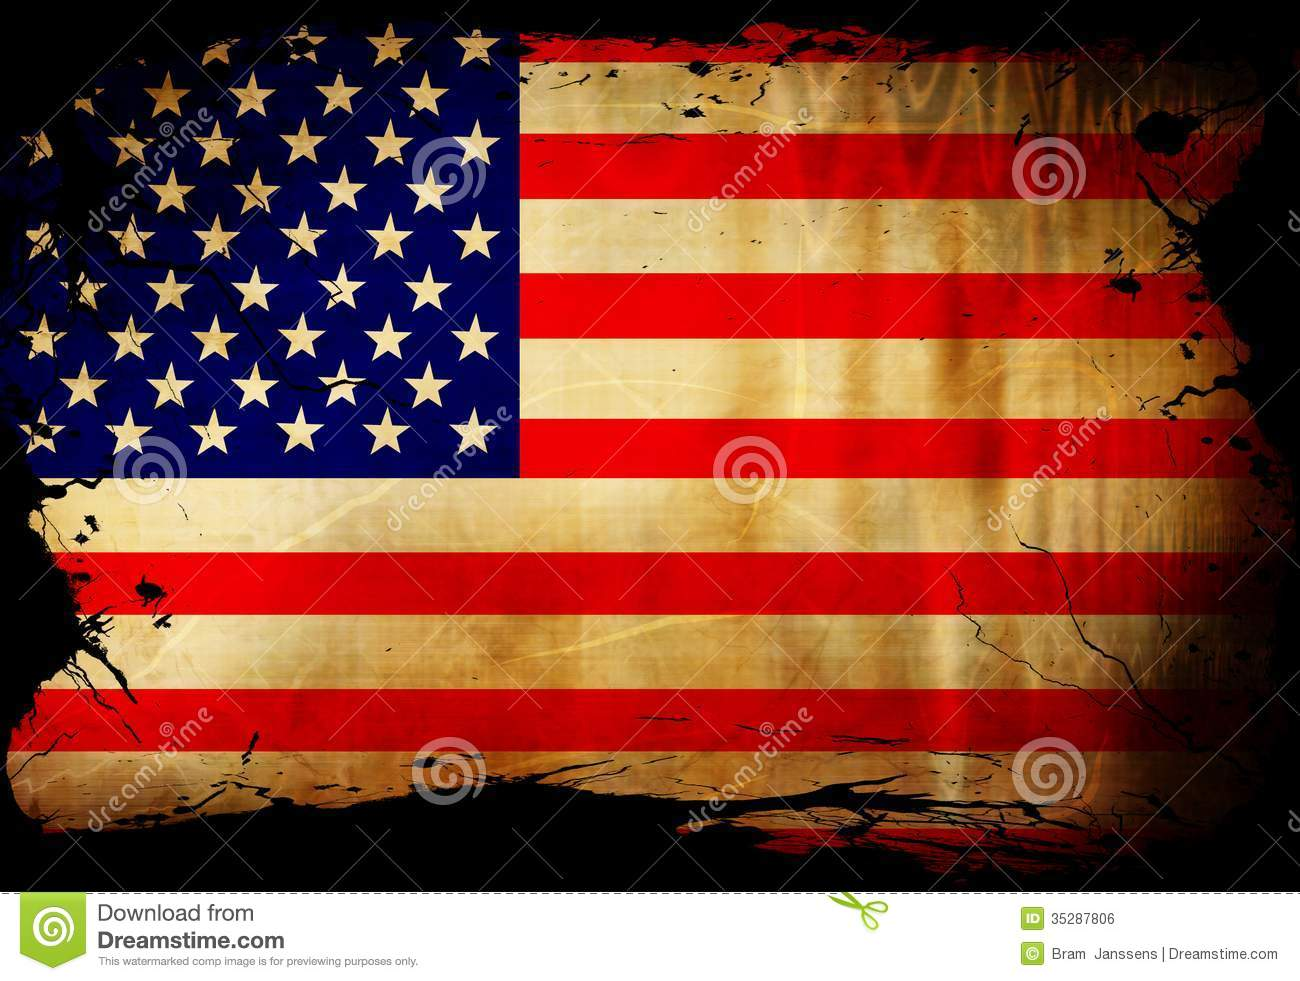 https://thumbs.dreamstime.com/z/american-flag-waving-wind-some-spots-stains-35287806.jpg Vintage